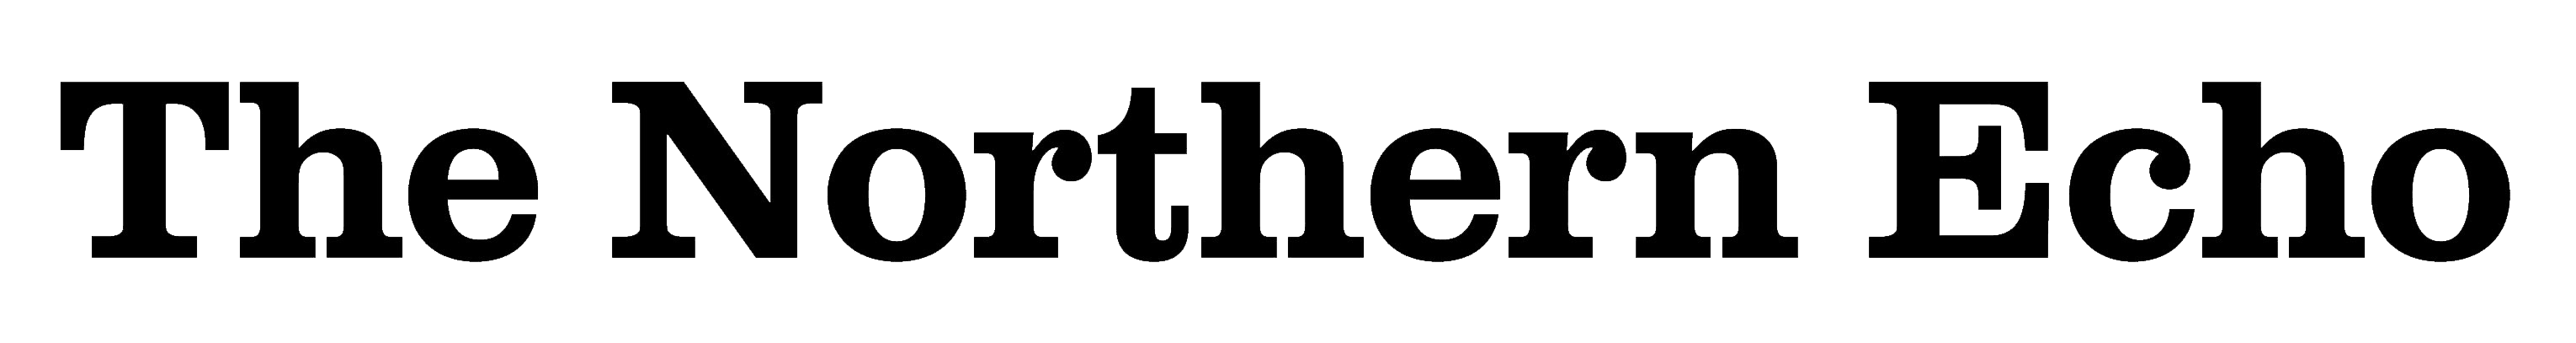 The Northern Echo Newspaper Logo, Black Font